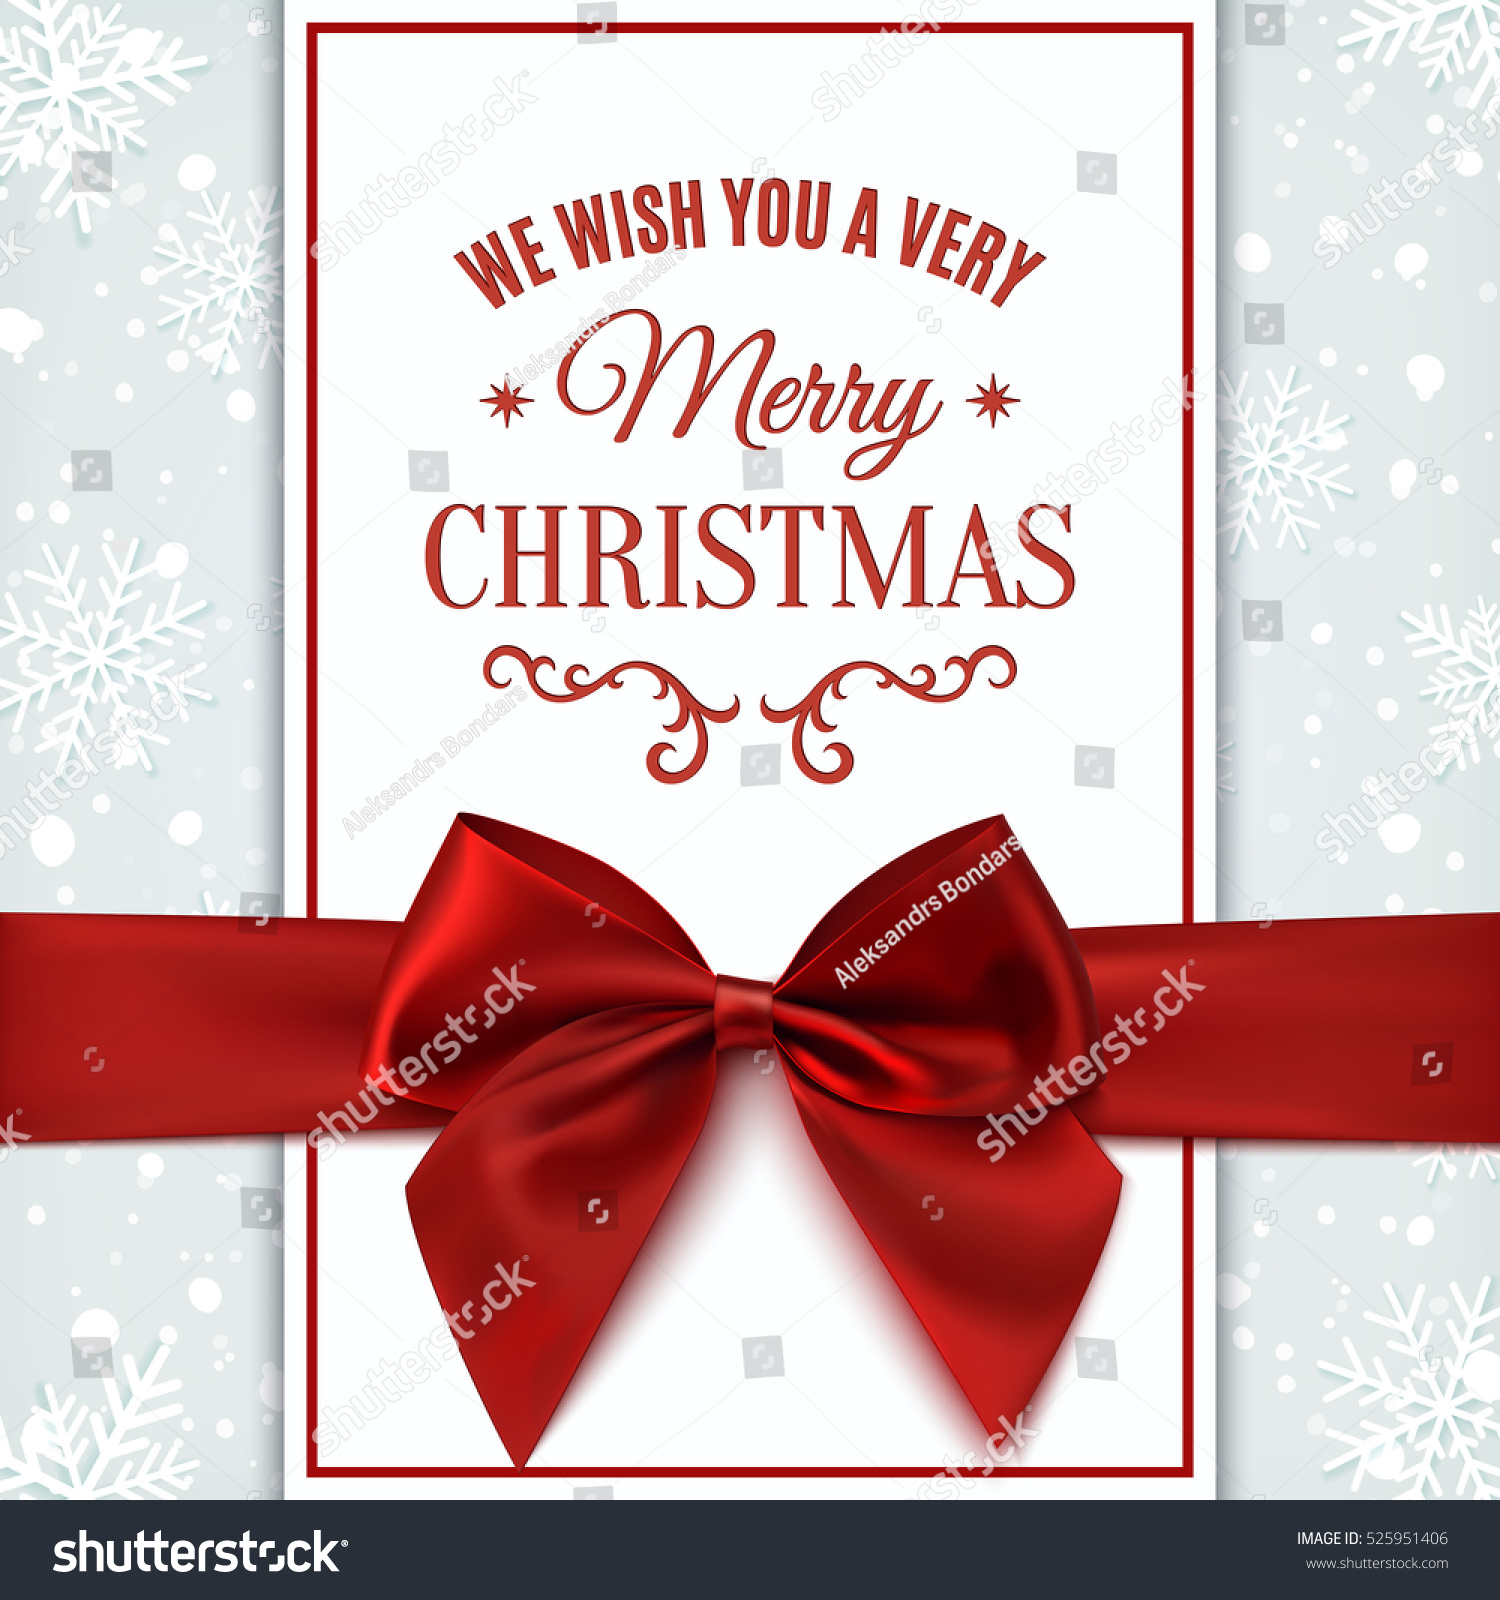 we wish you merry christmas greeting stock vector 525951406 we wish you merry christmas greeting card invitation flyer or brochure template vector